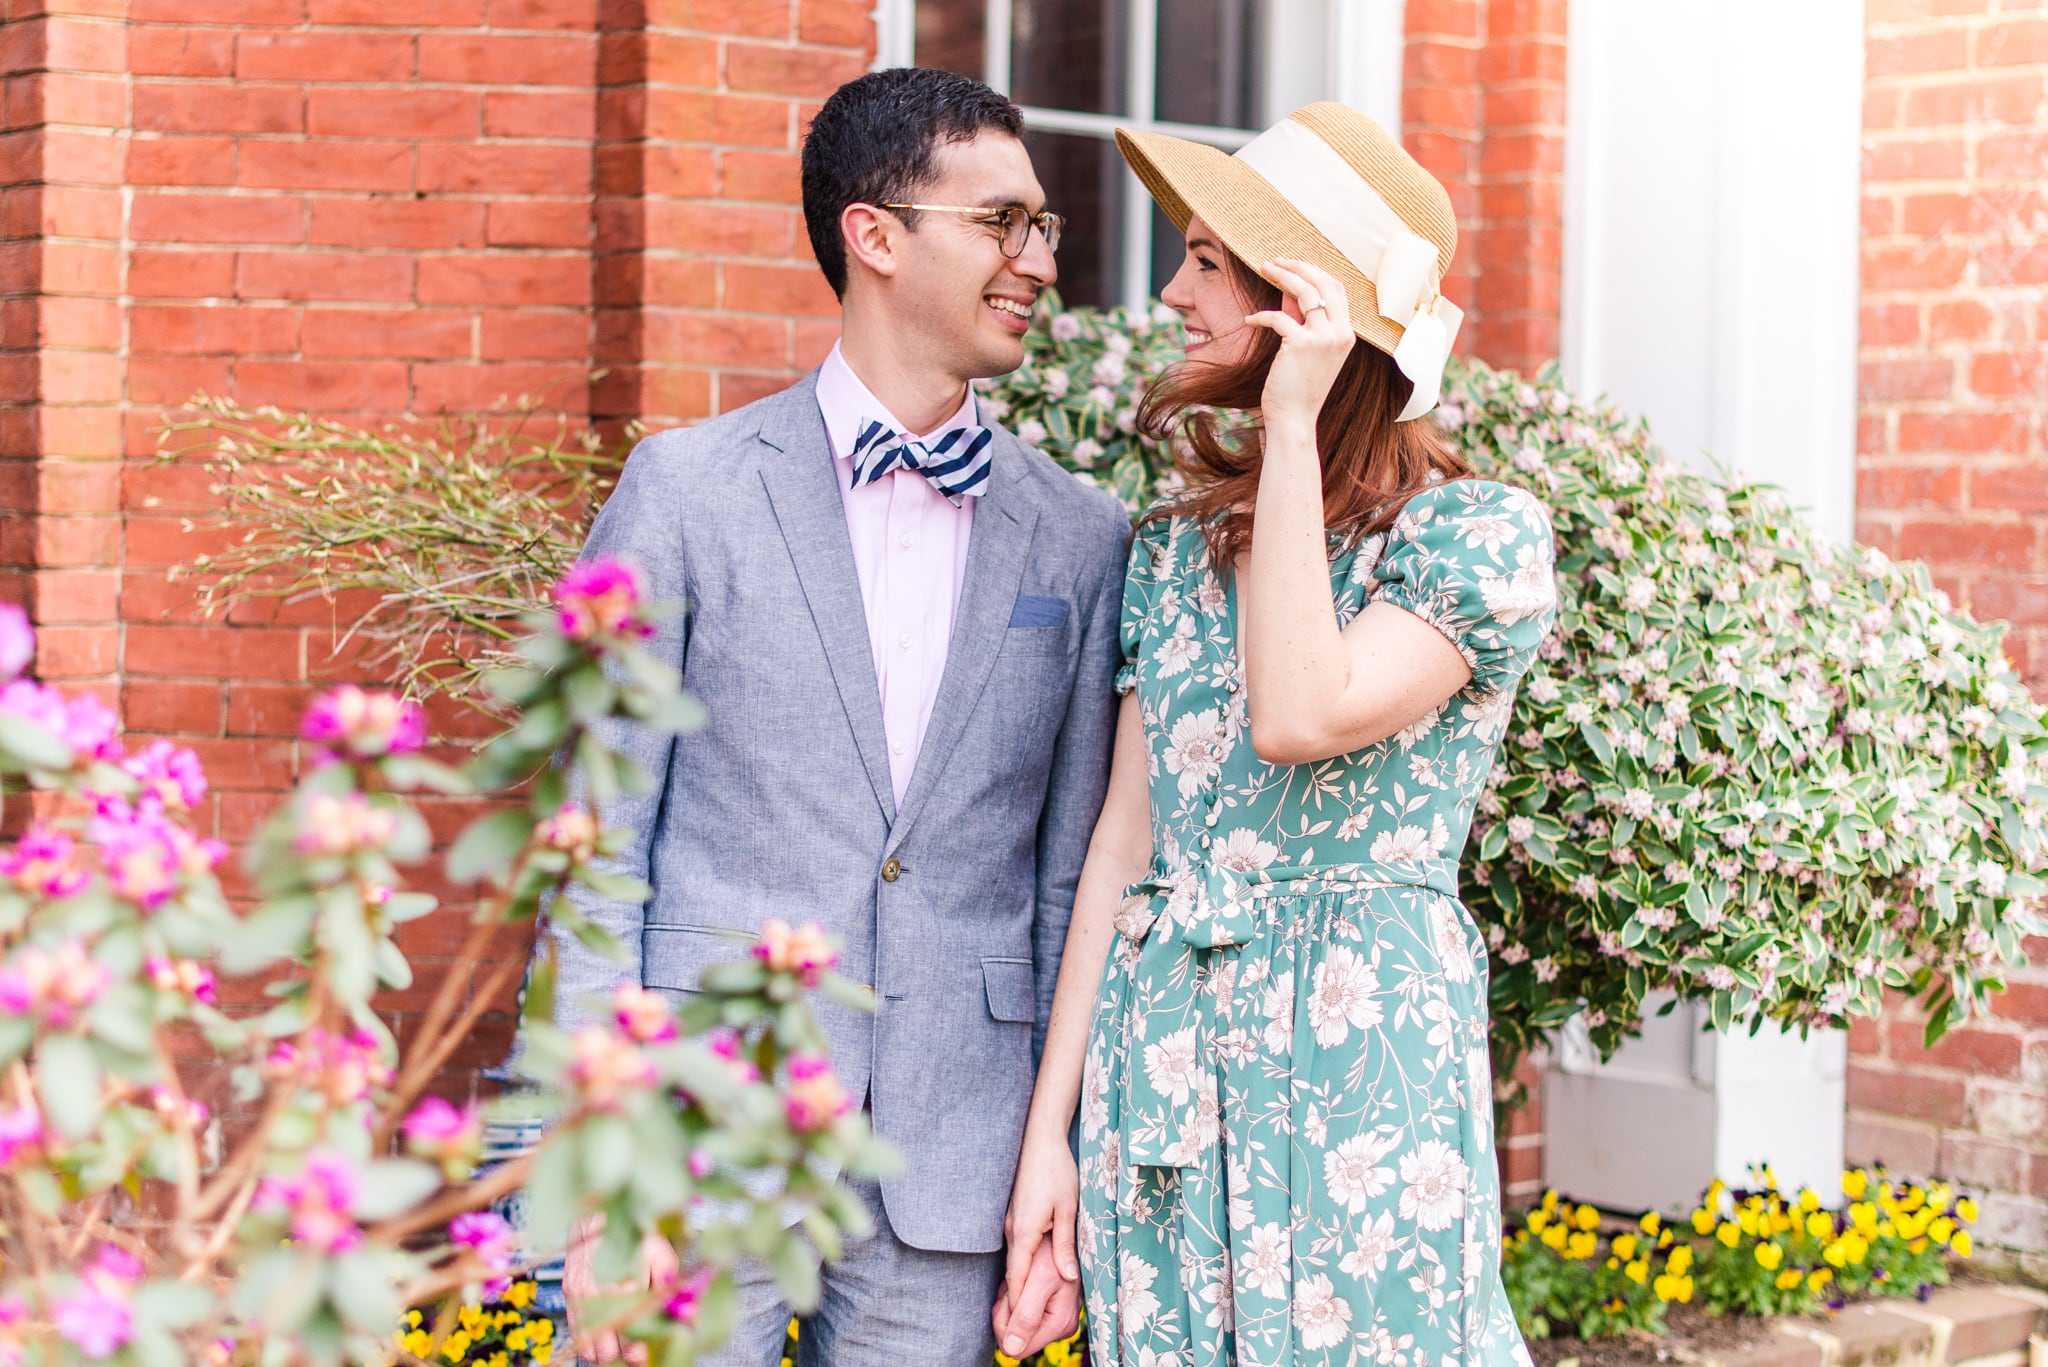 An engaged couple stands together as a breeze blows through the spring flowers around them during their engagement session in Old Town Alexandria